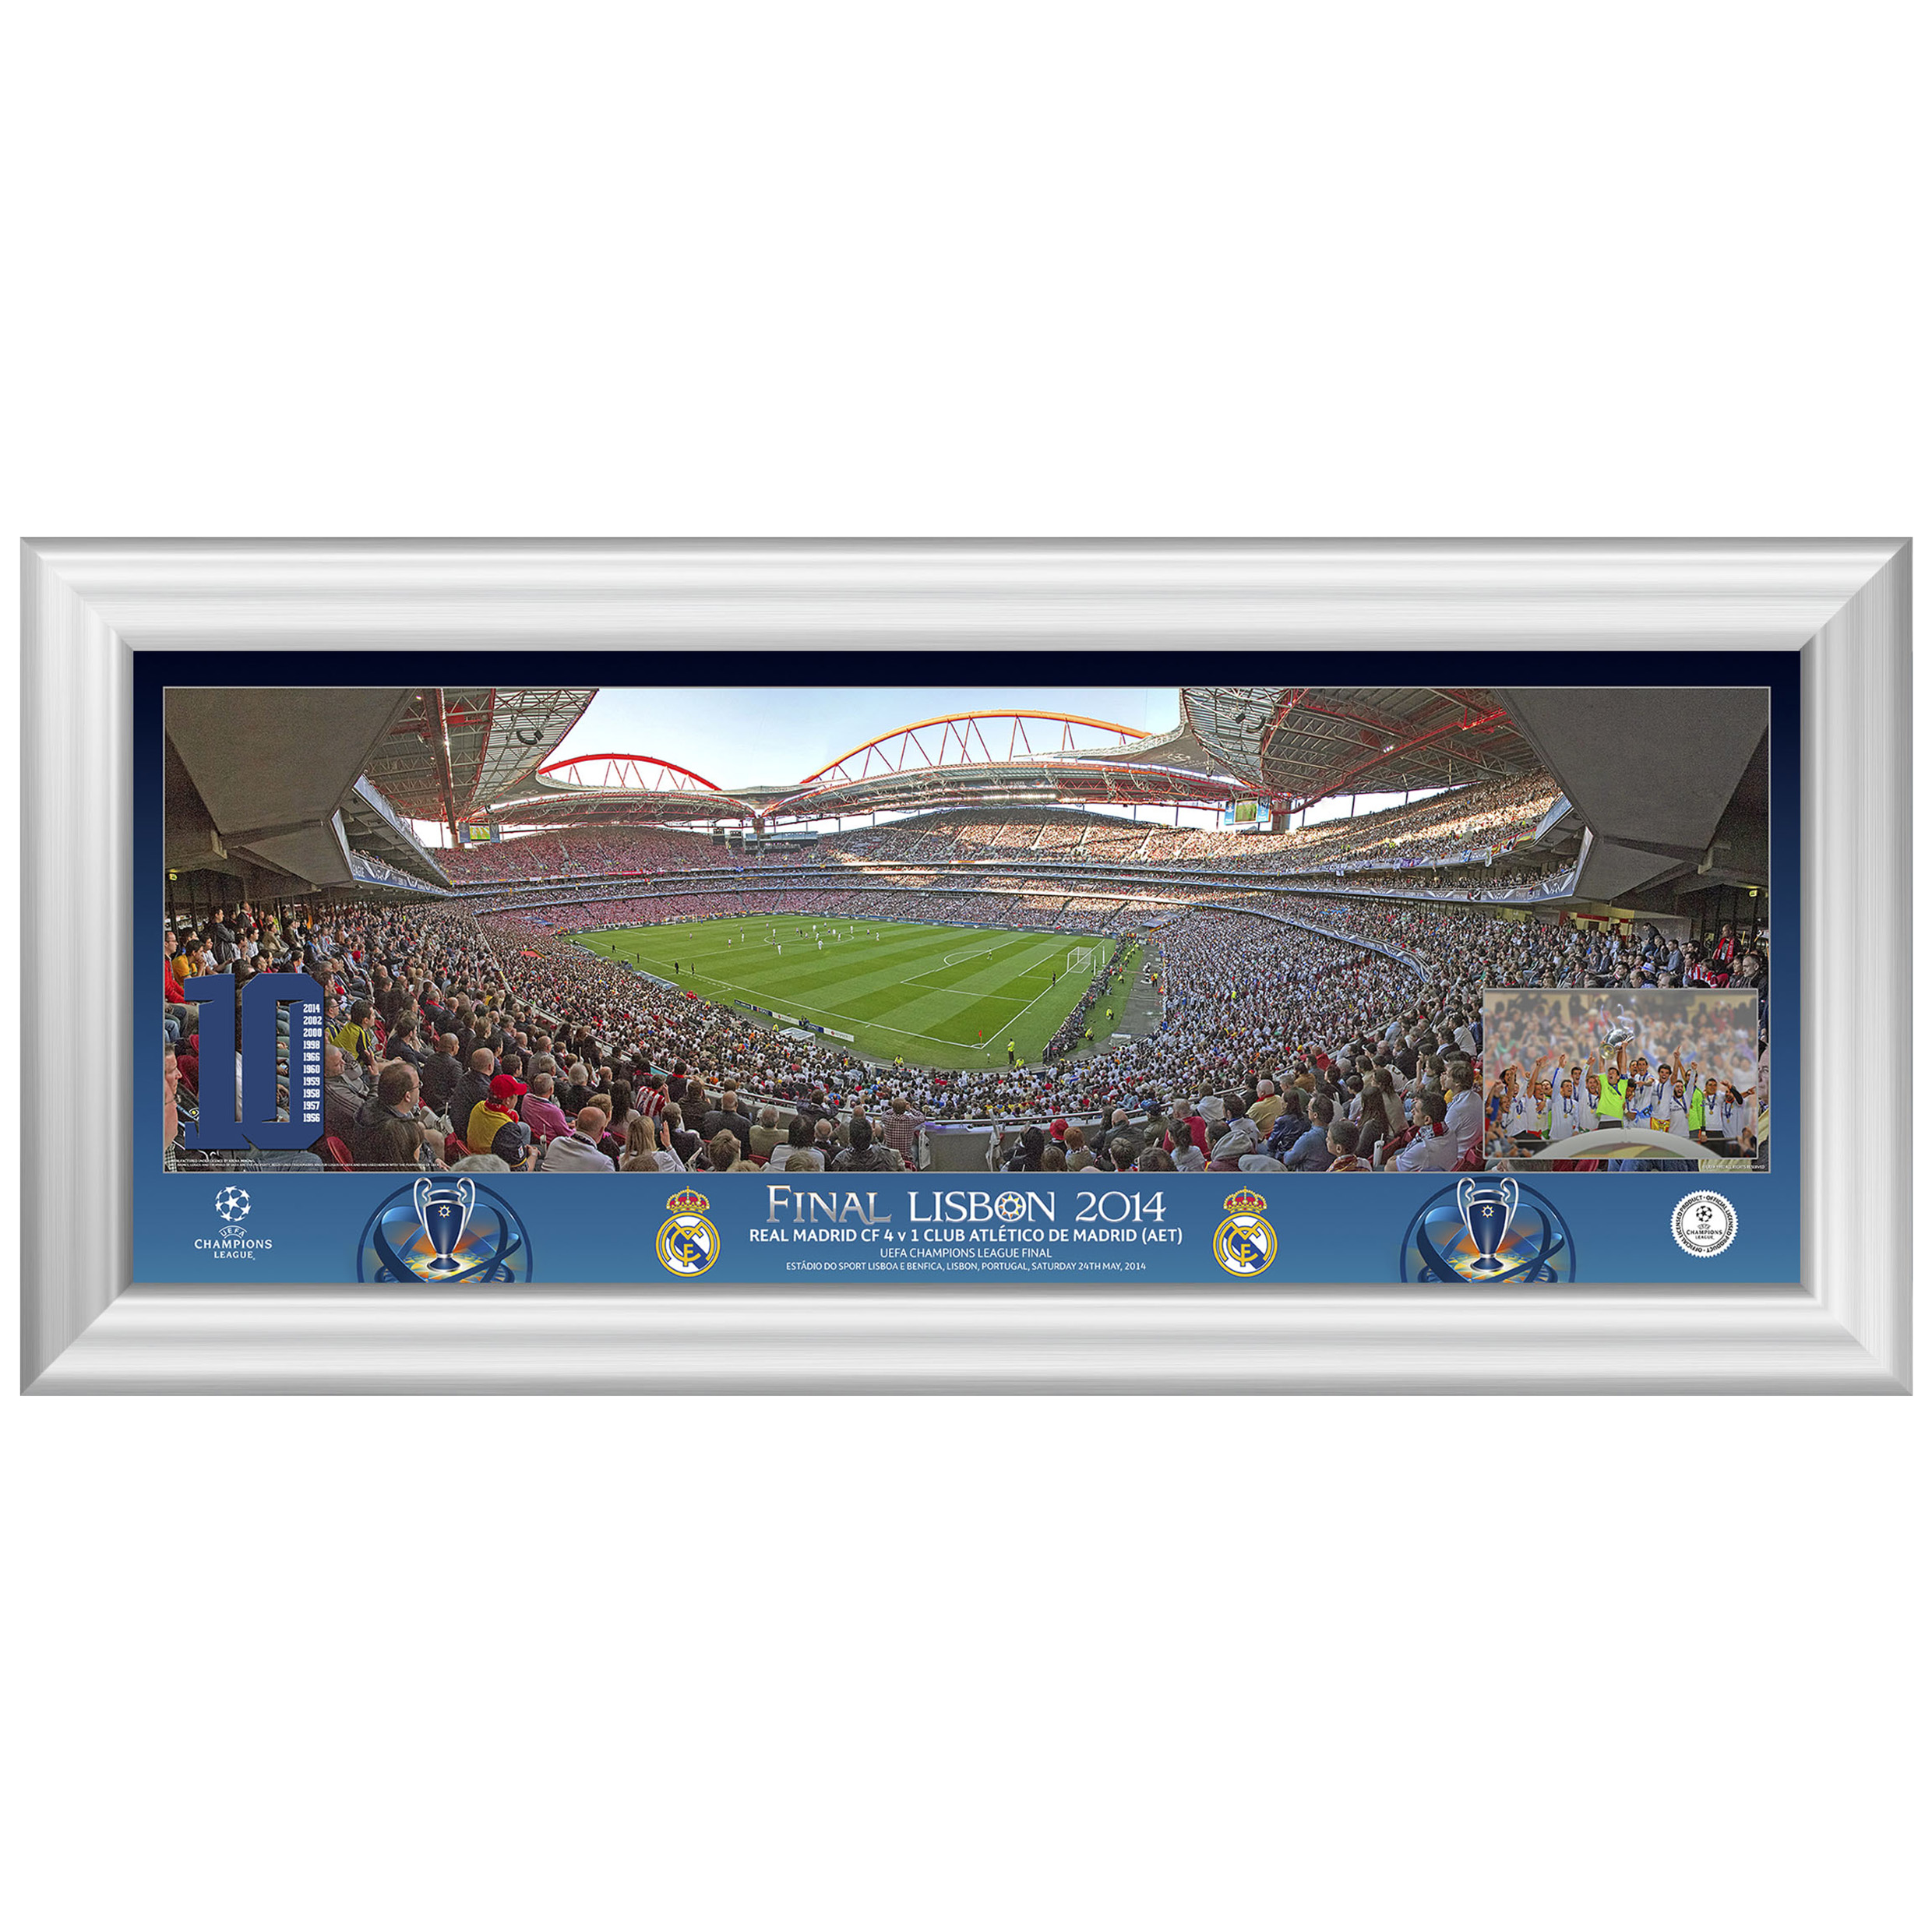 Real Madrid Champions League Final 2014 Match Panoramic Desktop Print - 13 x 5 Inch